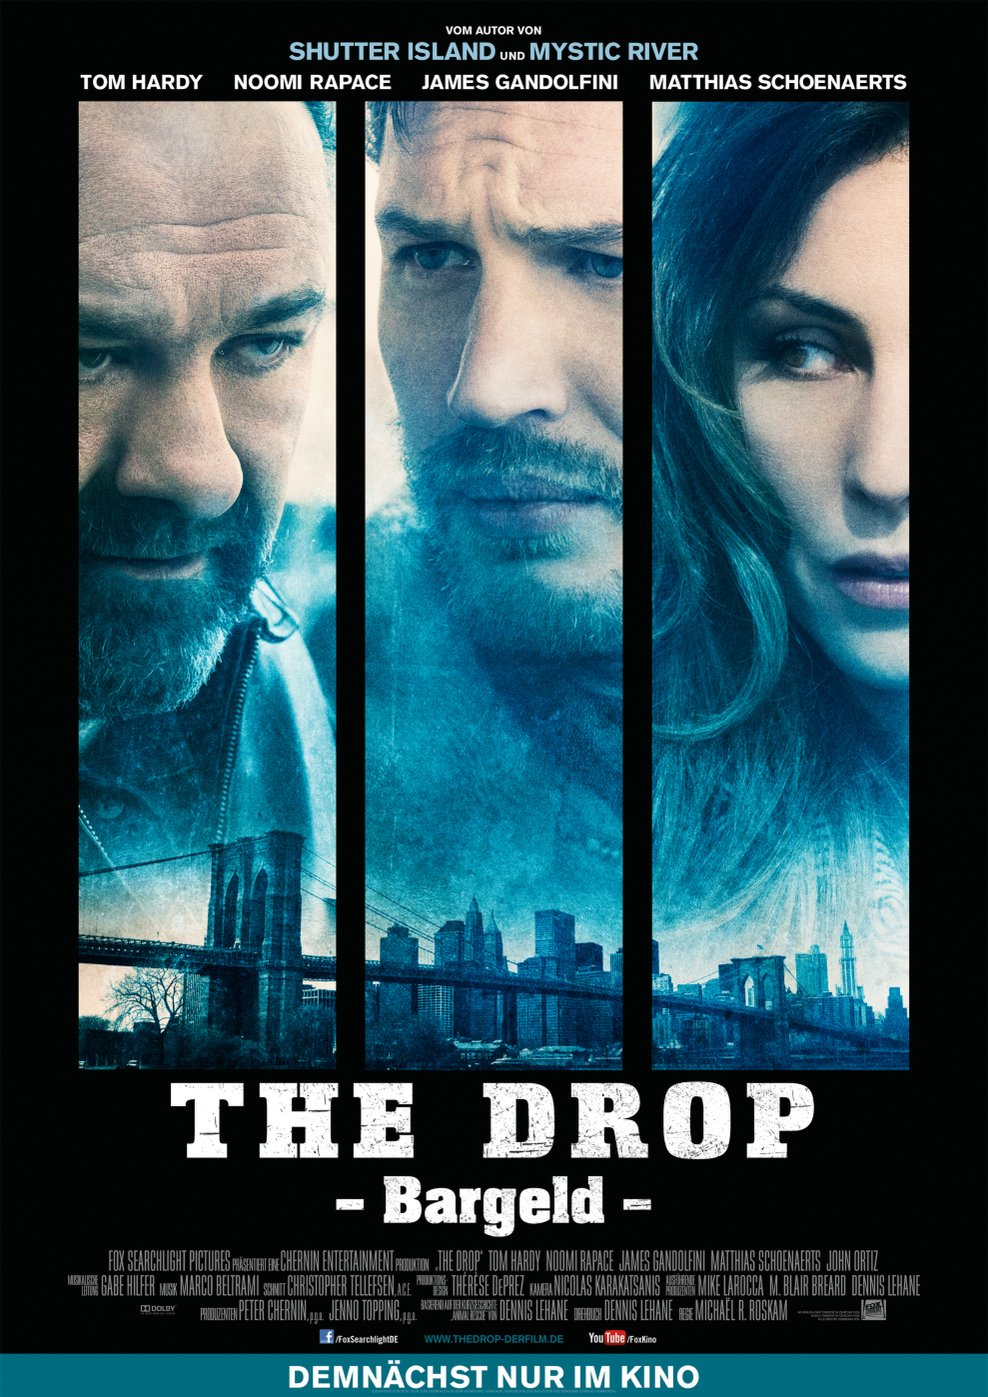 The Drop - Bargeld (Poster)